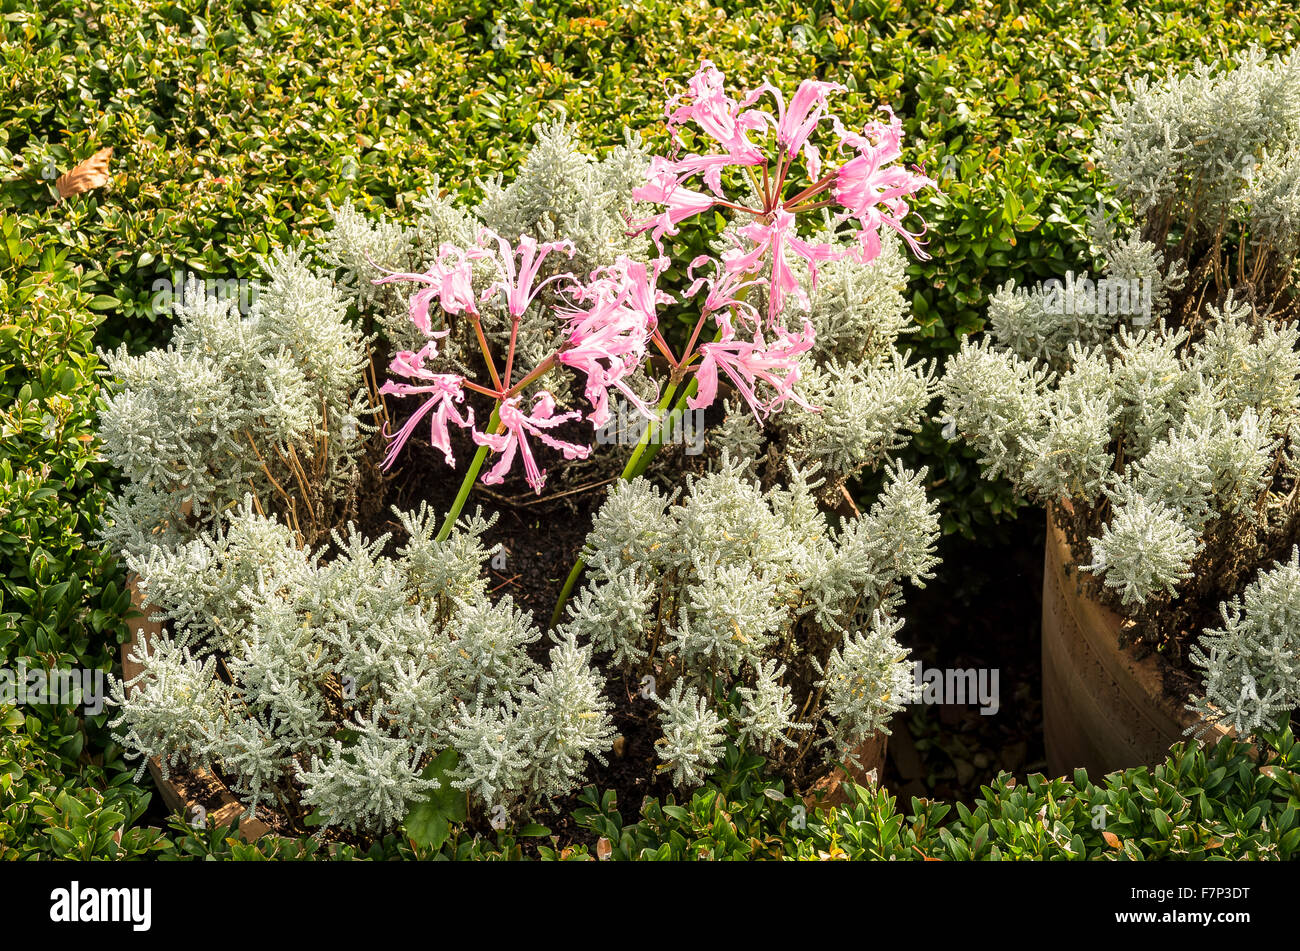 Pink nerines enclosed withing santolina and box hedging form unusual plant association - Stock Image